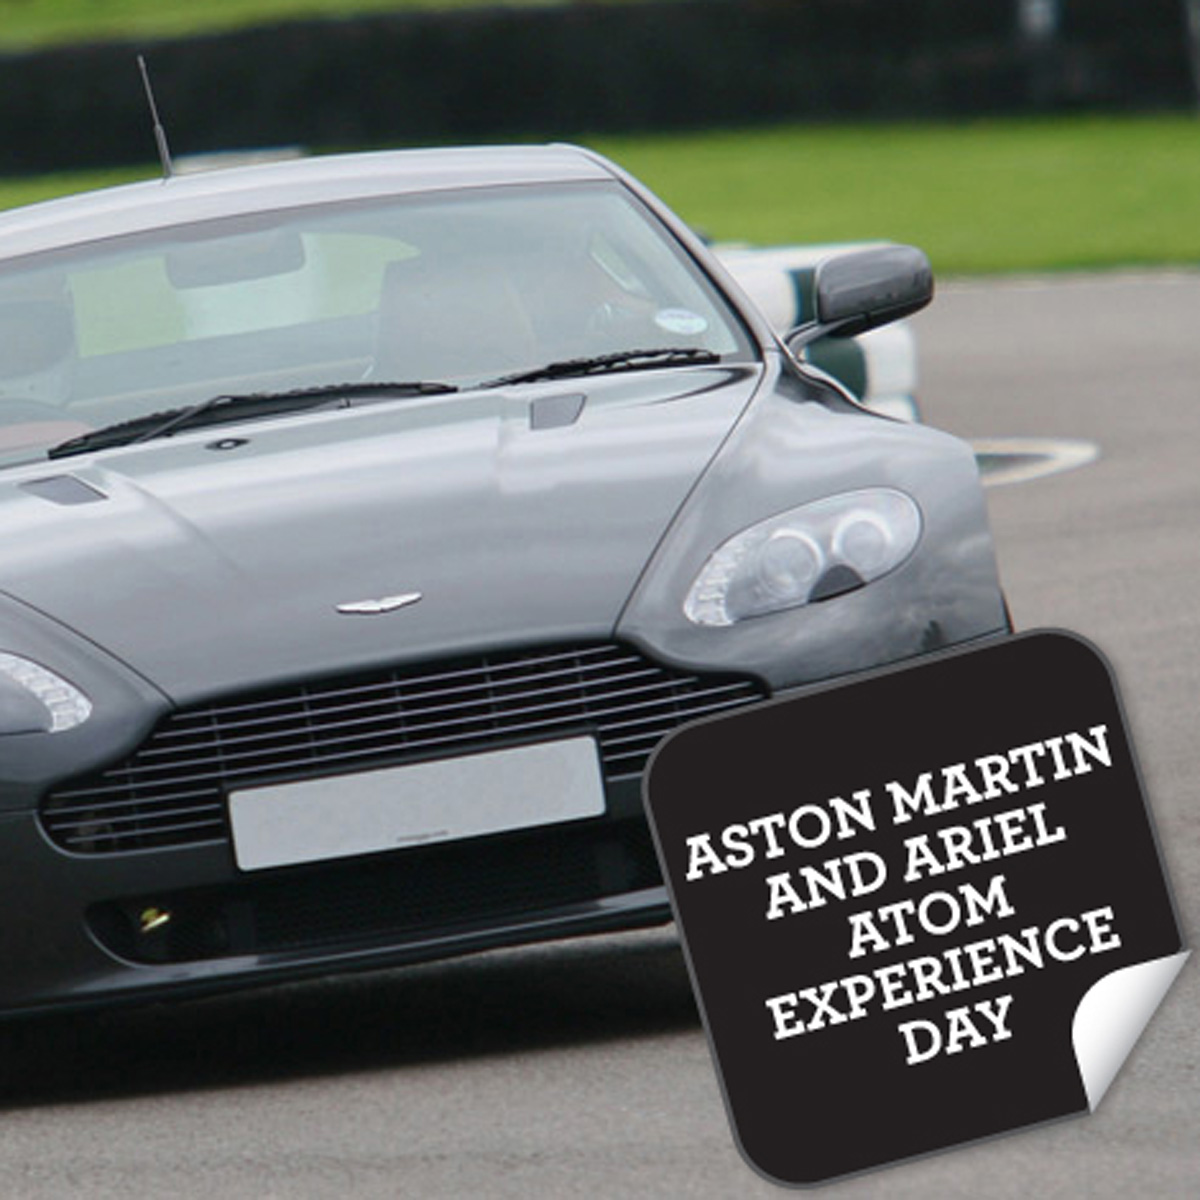 Aston Martin and Ariel Atom Experience Day